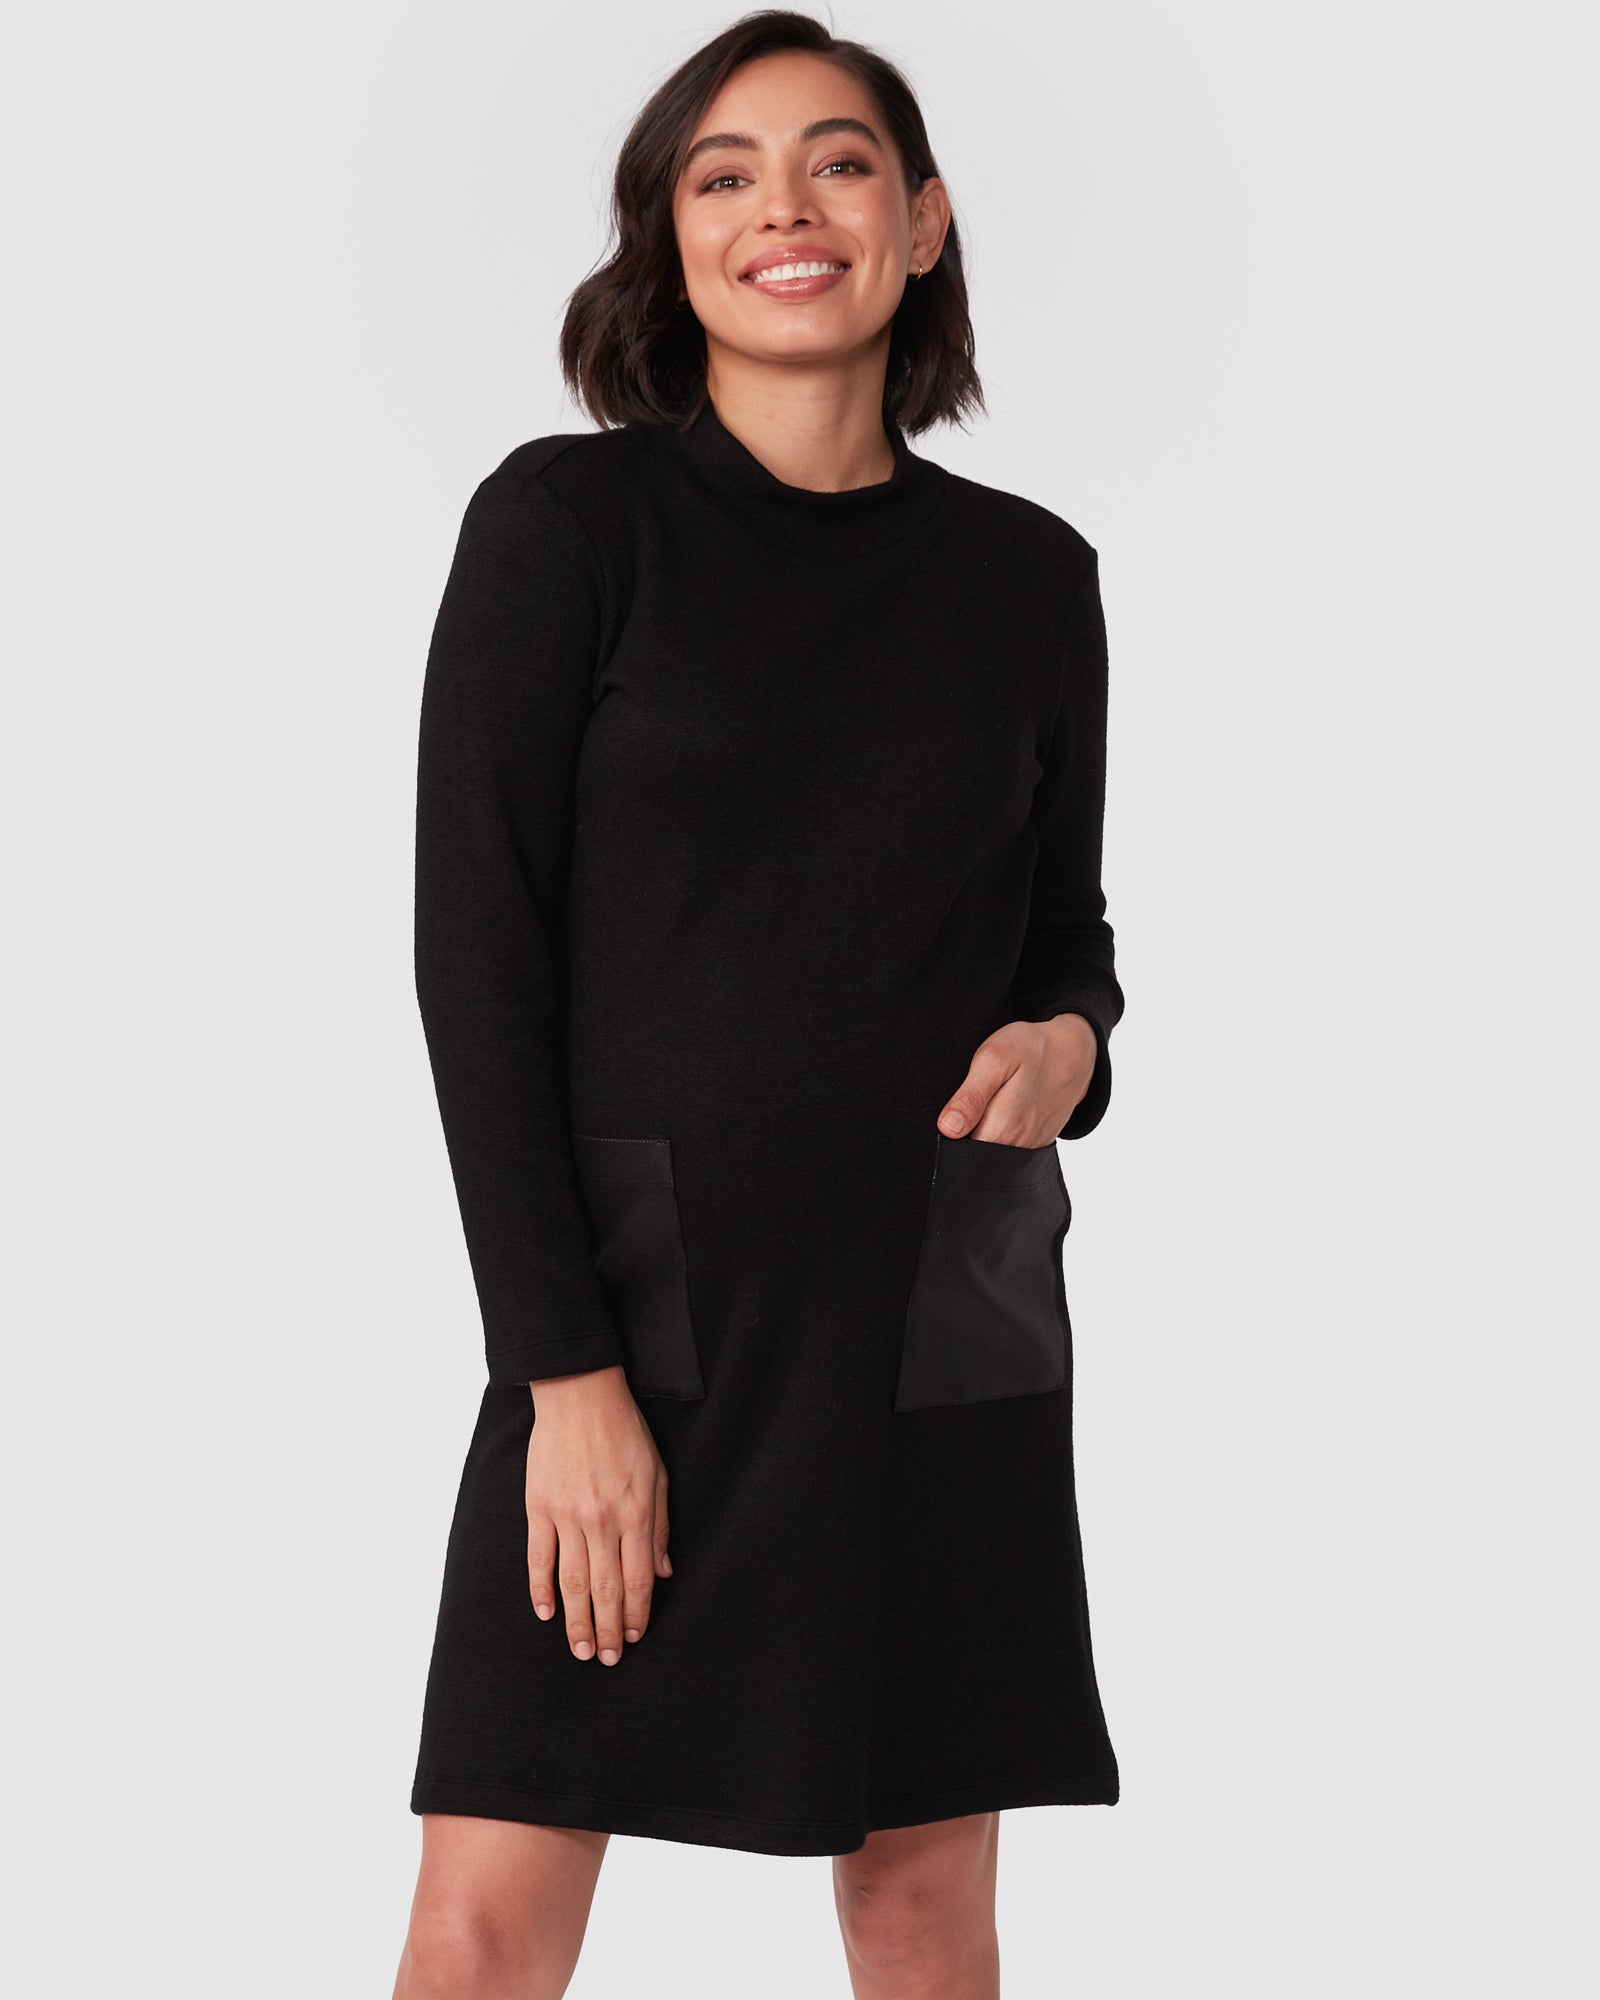 Greta Nursing Dress